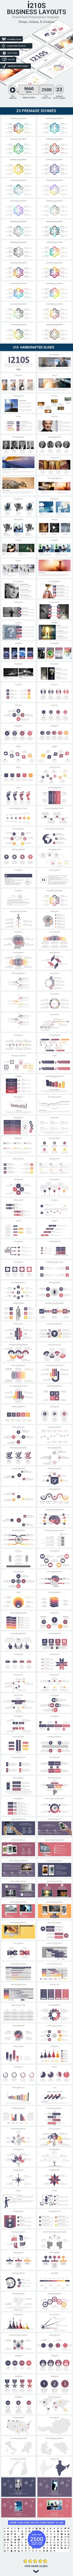 i210S Business Layouts PowerPoint Presentation Template. Download here: http://graphicriver.net/item/i210s-business-layouts-powerpoint-presentation-template/15577330?ref=ksioks